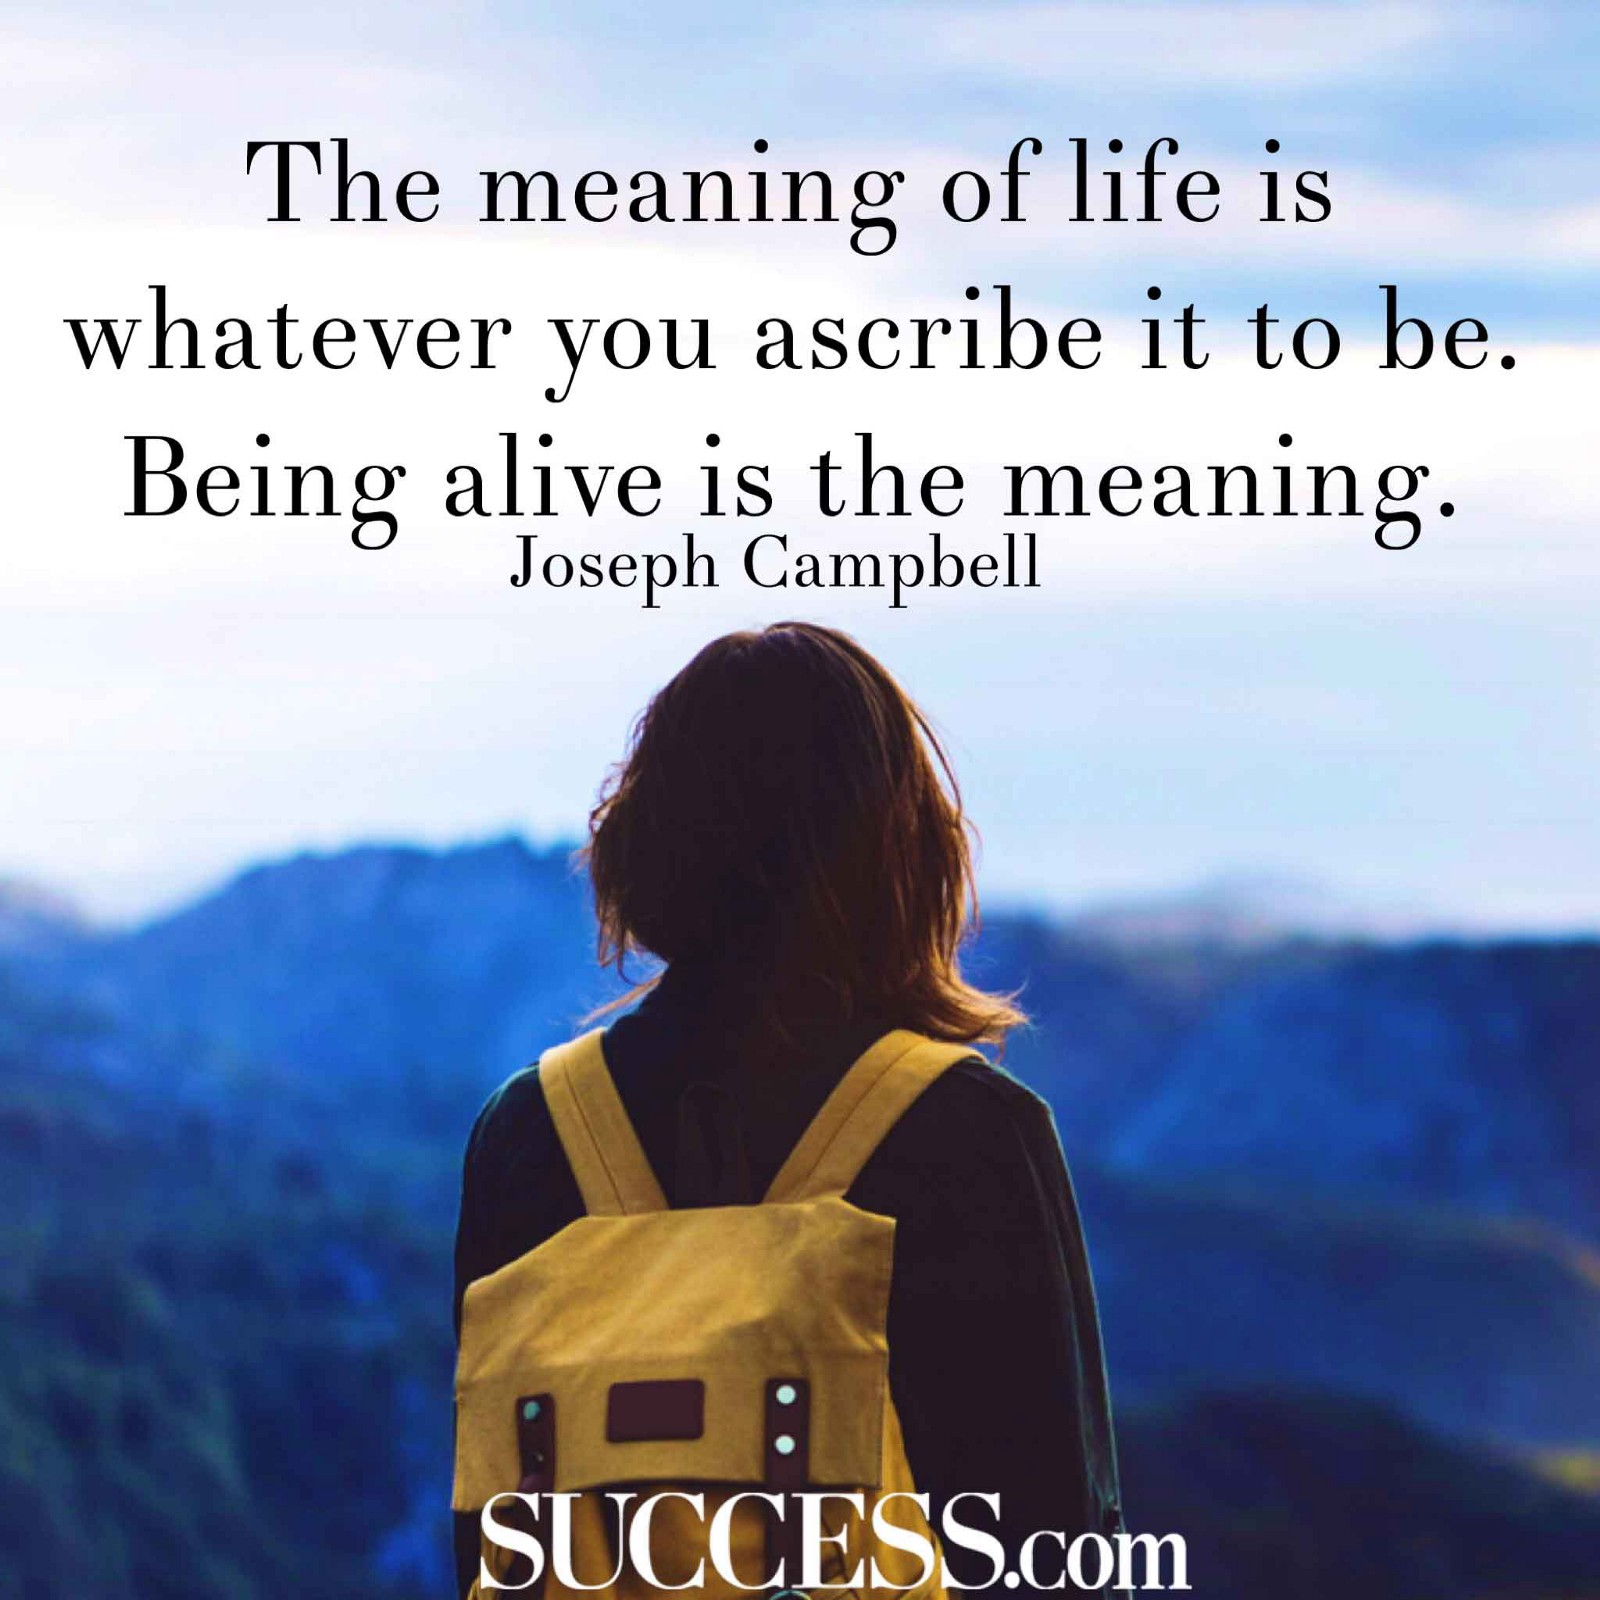 Wise Life Quotes The Meaning Of Life In 15 Wise Quotes  Success Magazine  Medium